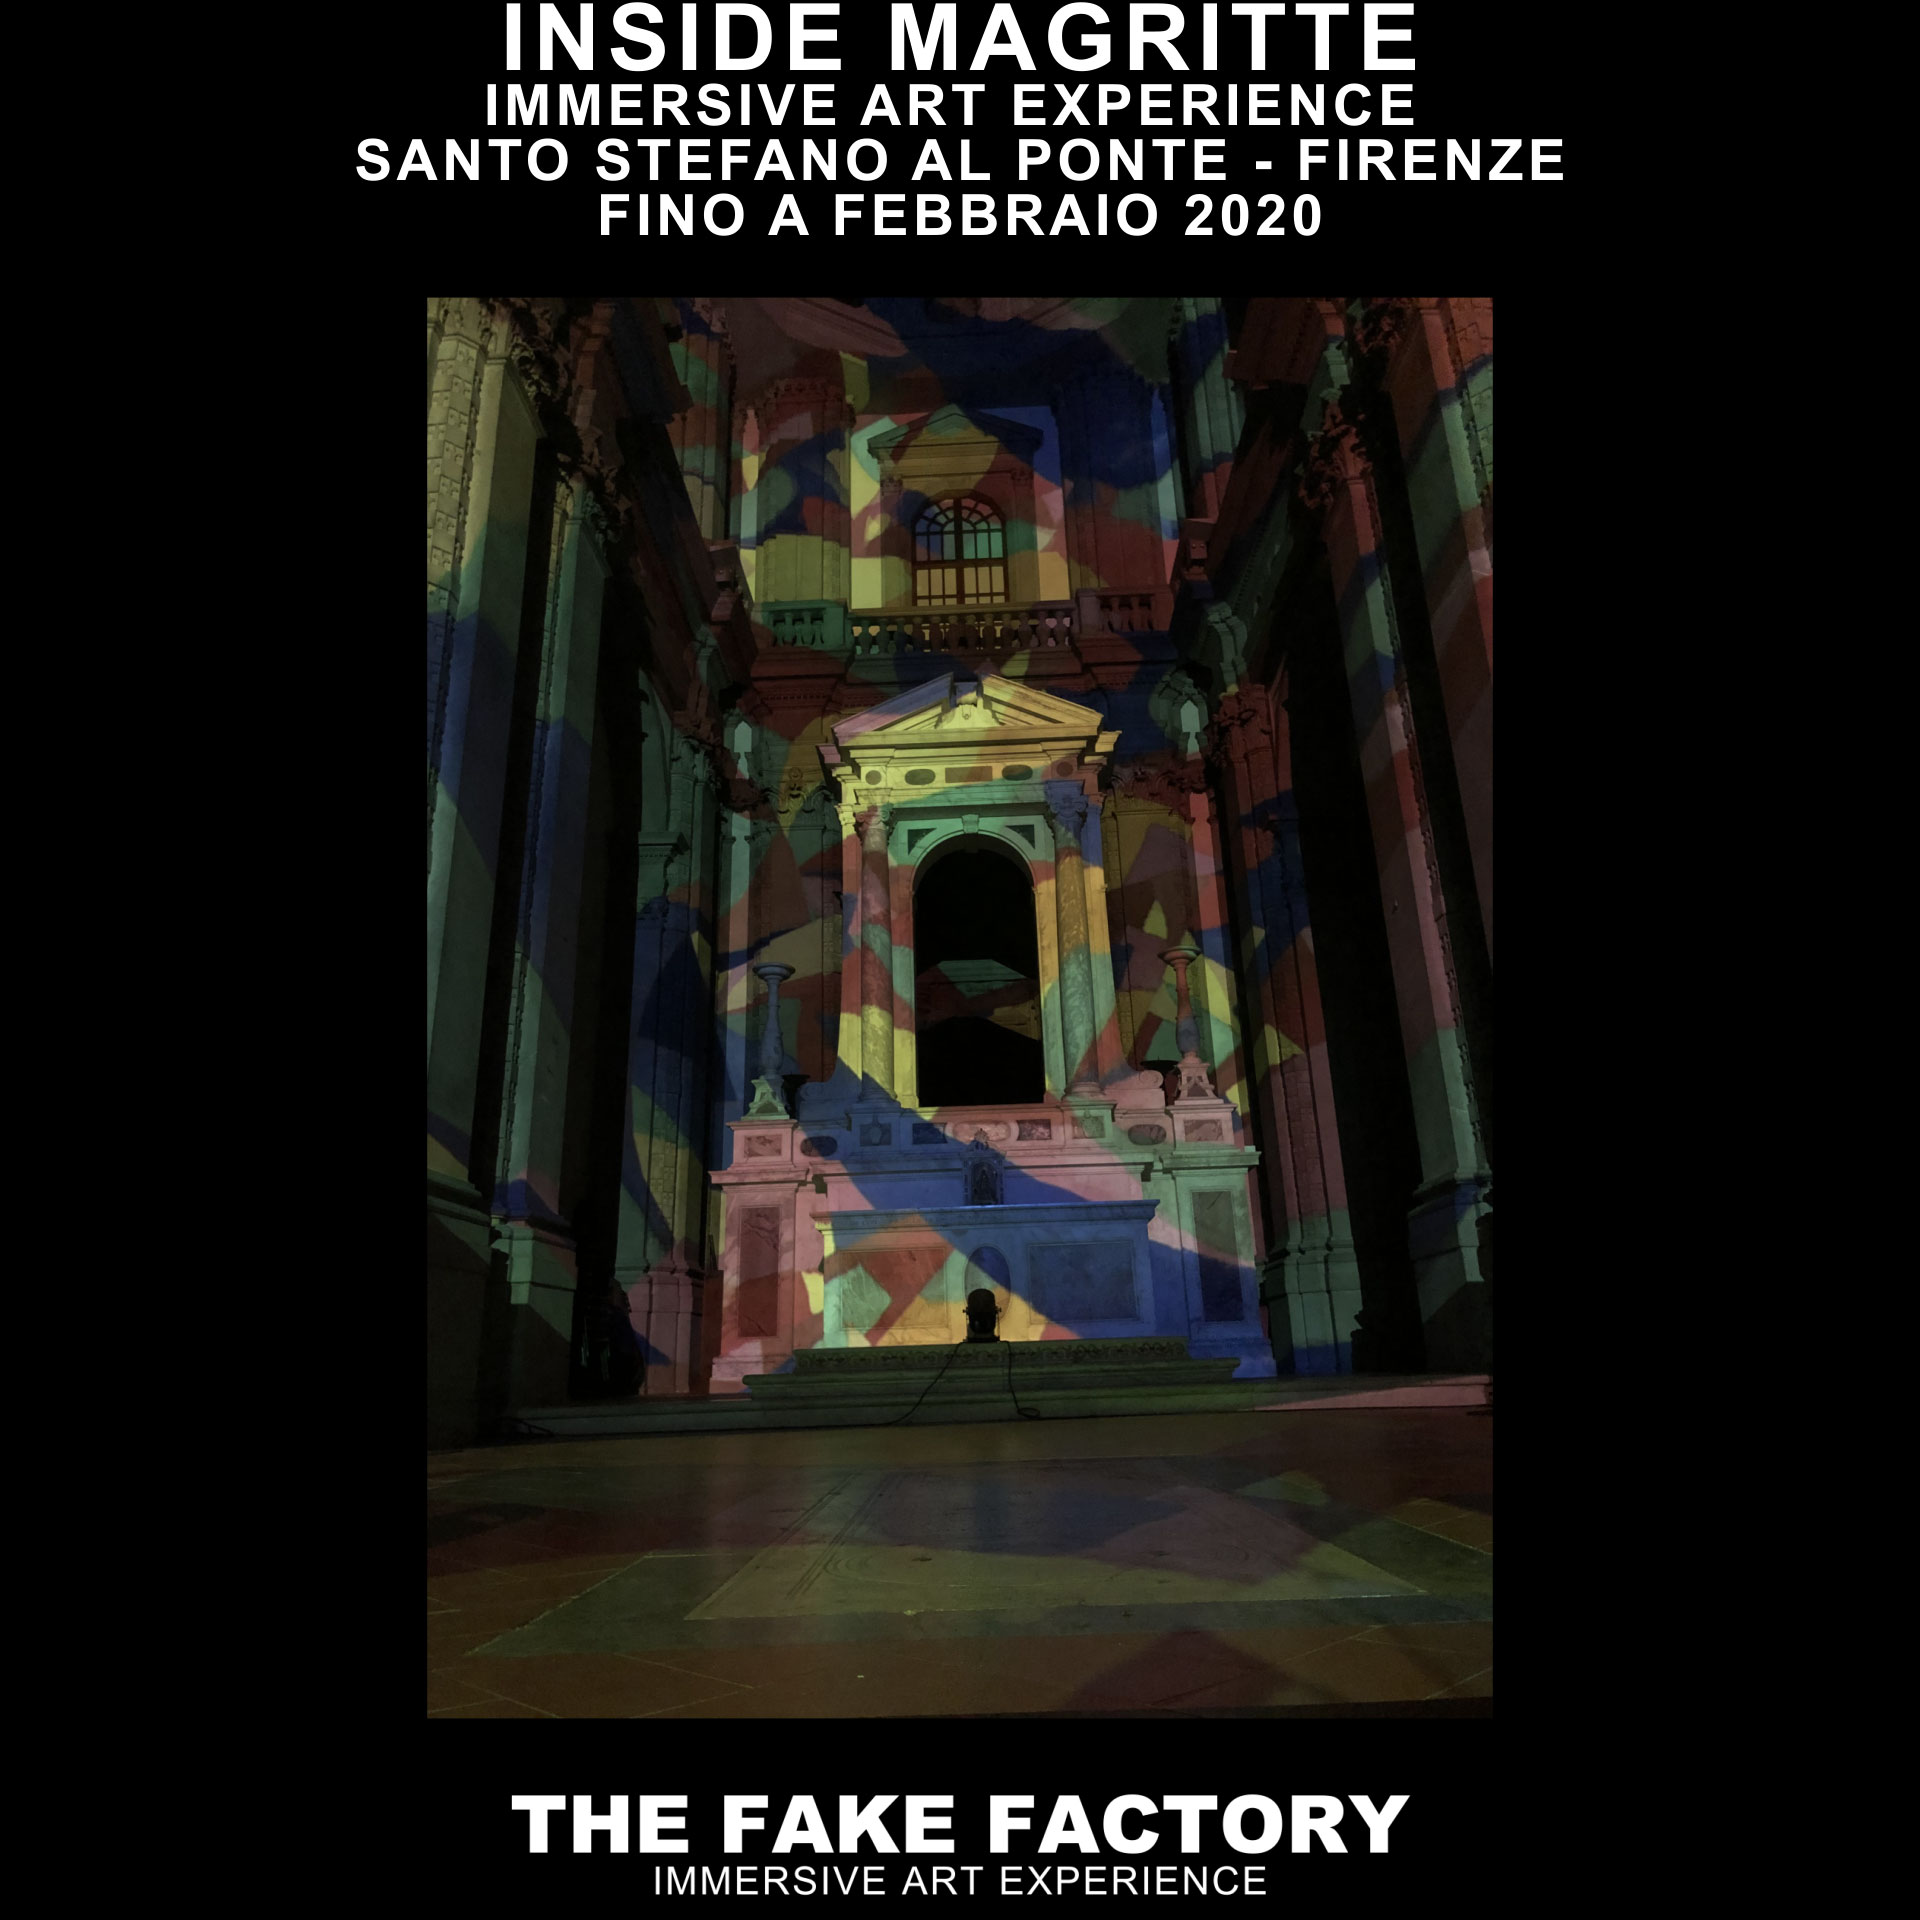 THE FAKE FACTORY MAGRITTE ART EXPERIENCE_00033